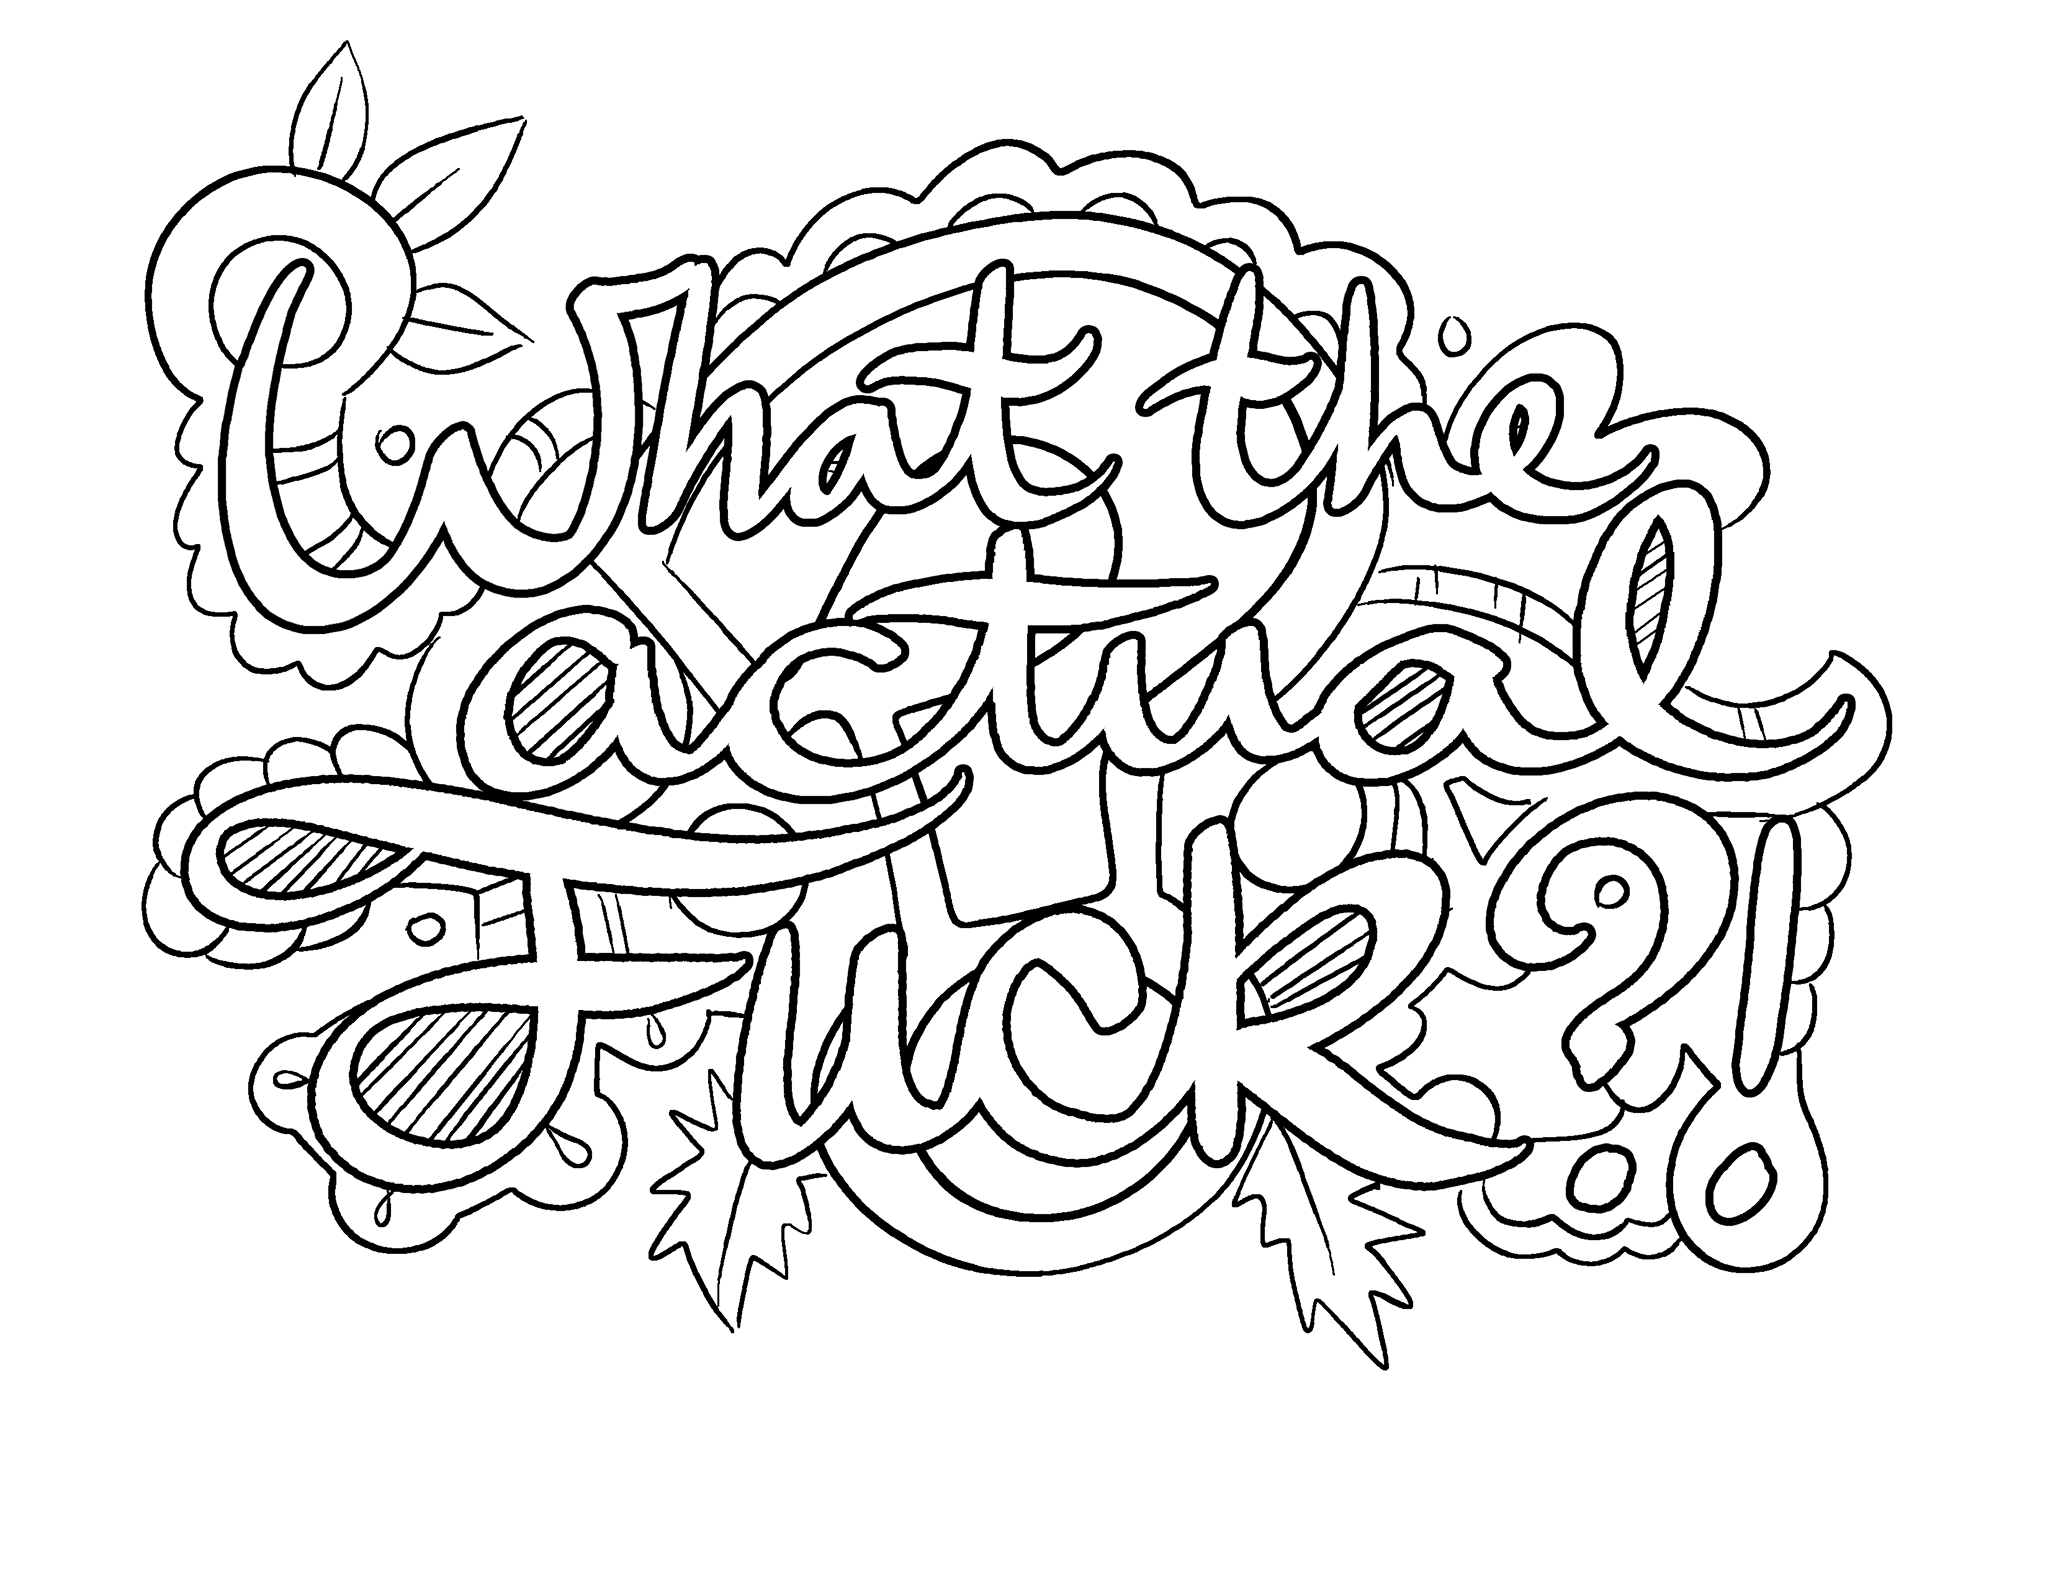 Free printable coloring pages for adults only free printable coloring pages for adults only 44 - Find This Pin And More On I Fucking Love Coloring